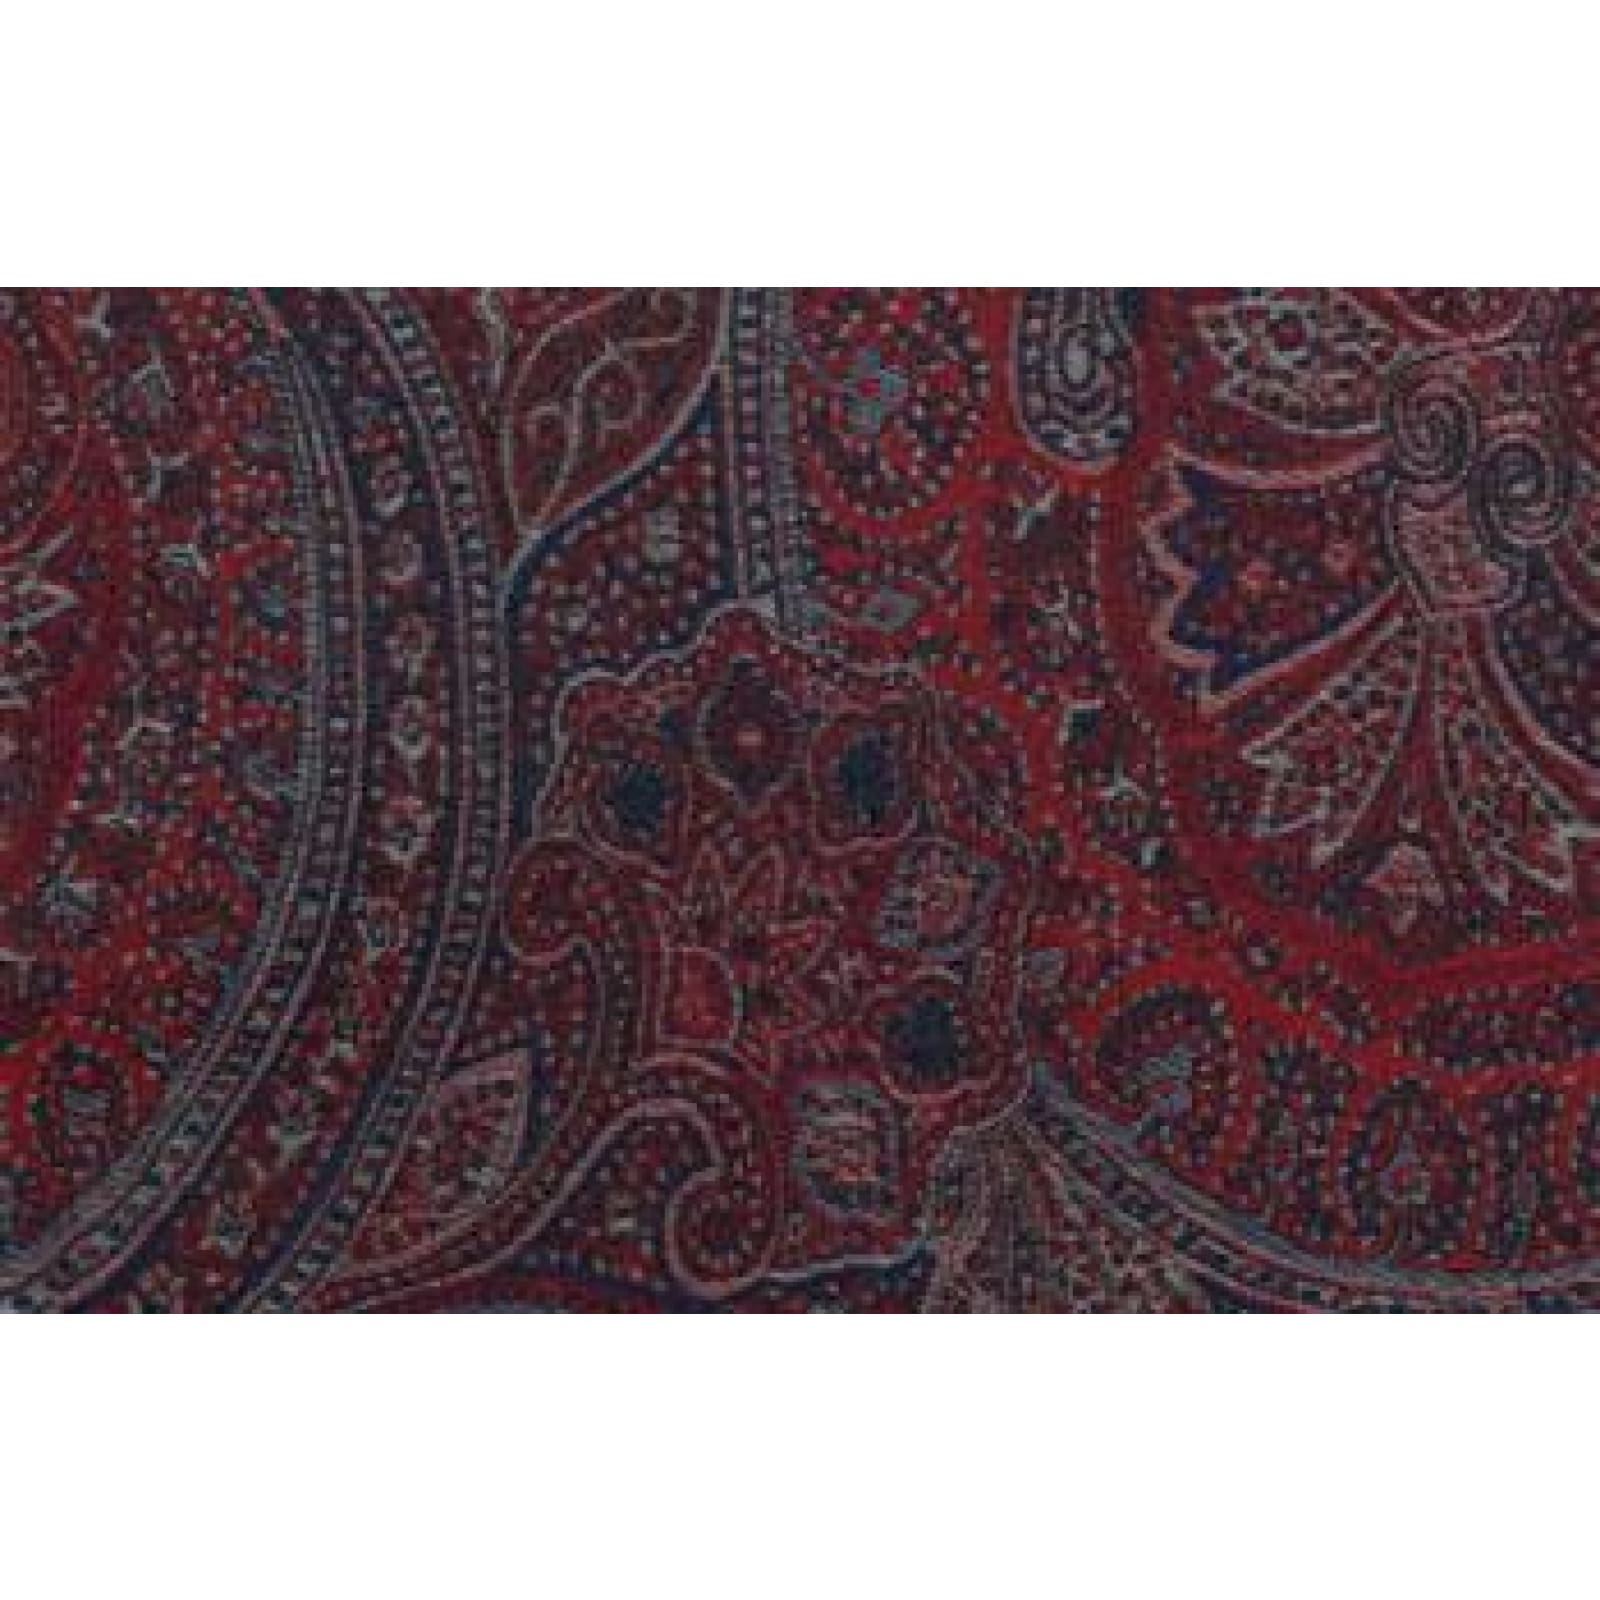 Berlin Bow No. Iii Oriente Paisley - 2061 Camine - Accessories